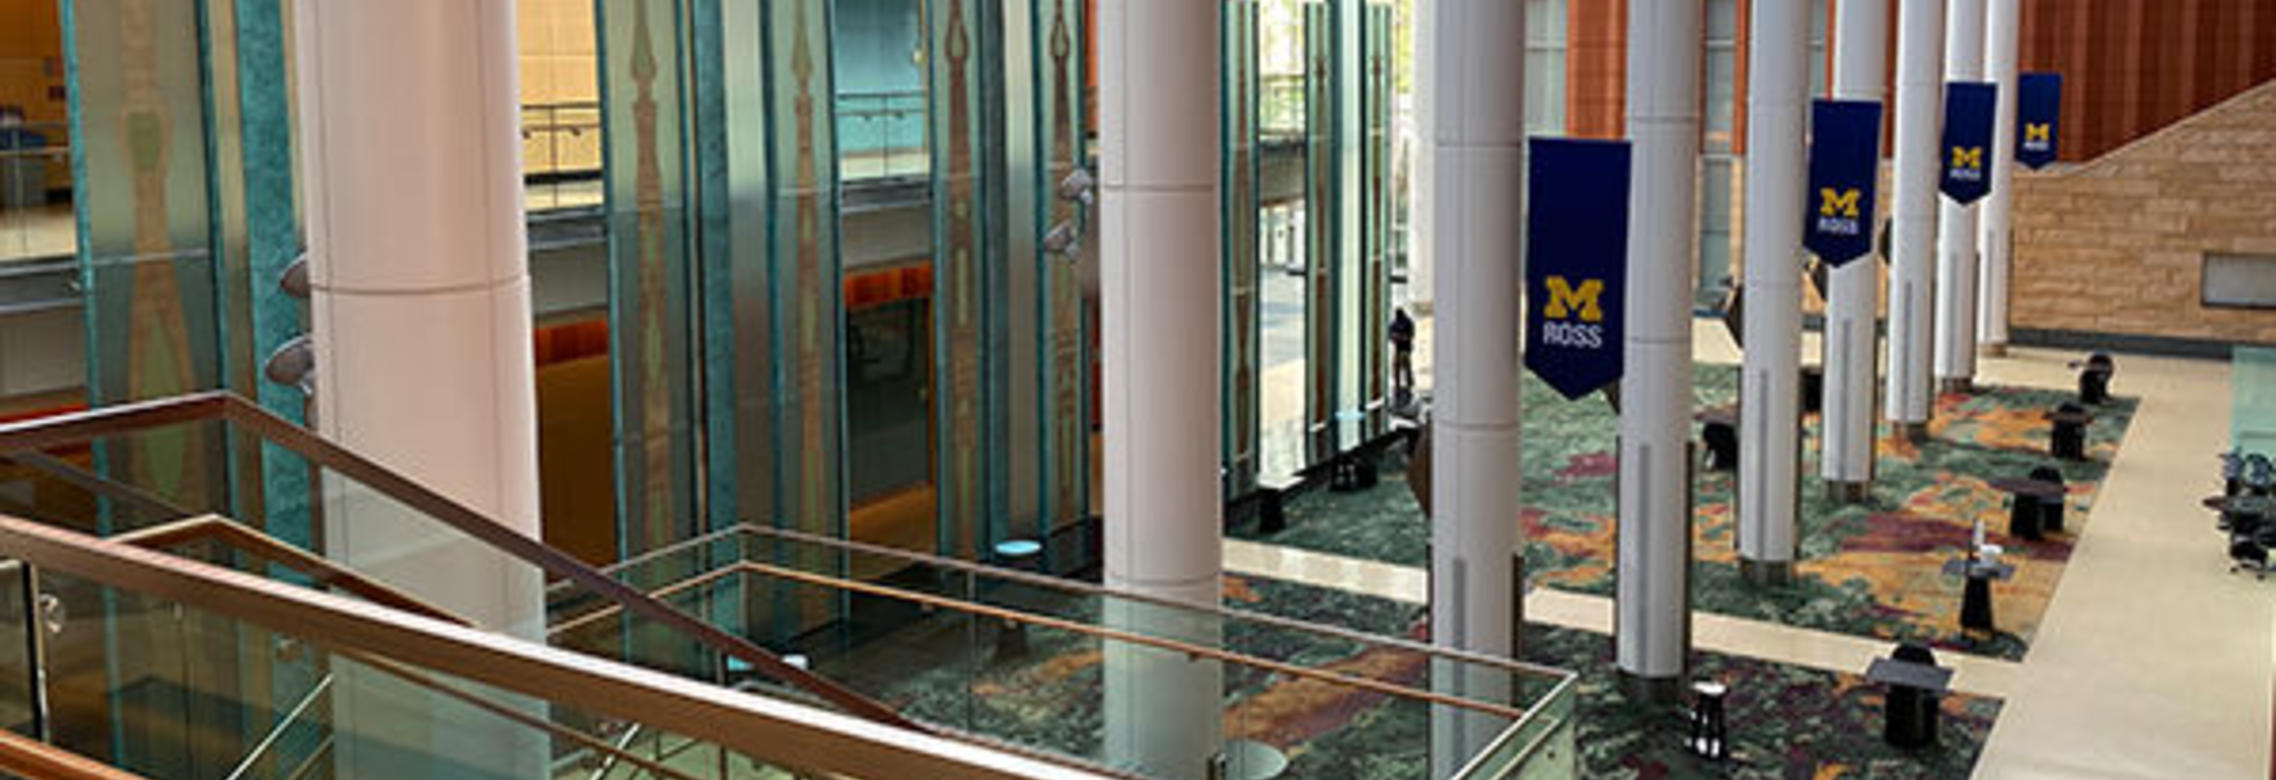 panasonic-pro-audio-university-of-michigan-ross-business-school-lobby-case-study-thumbnail-image